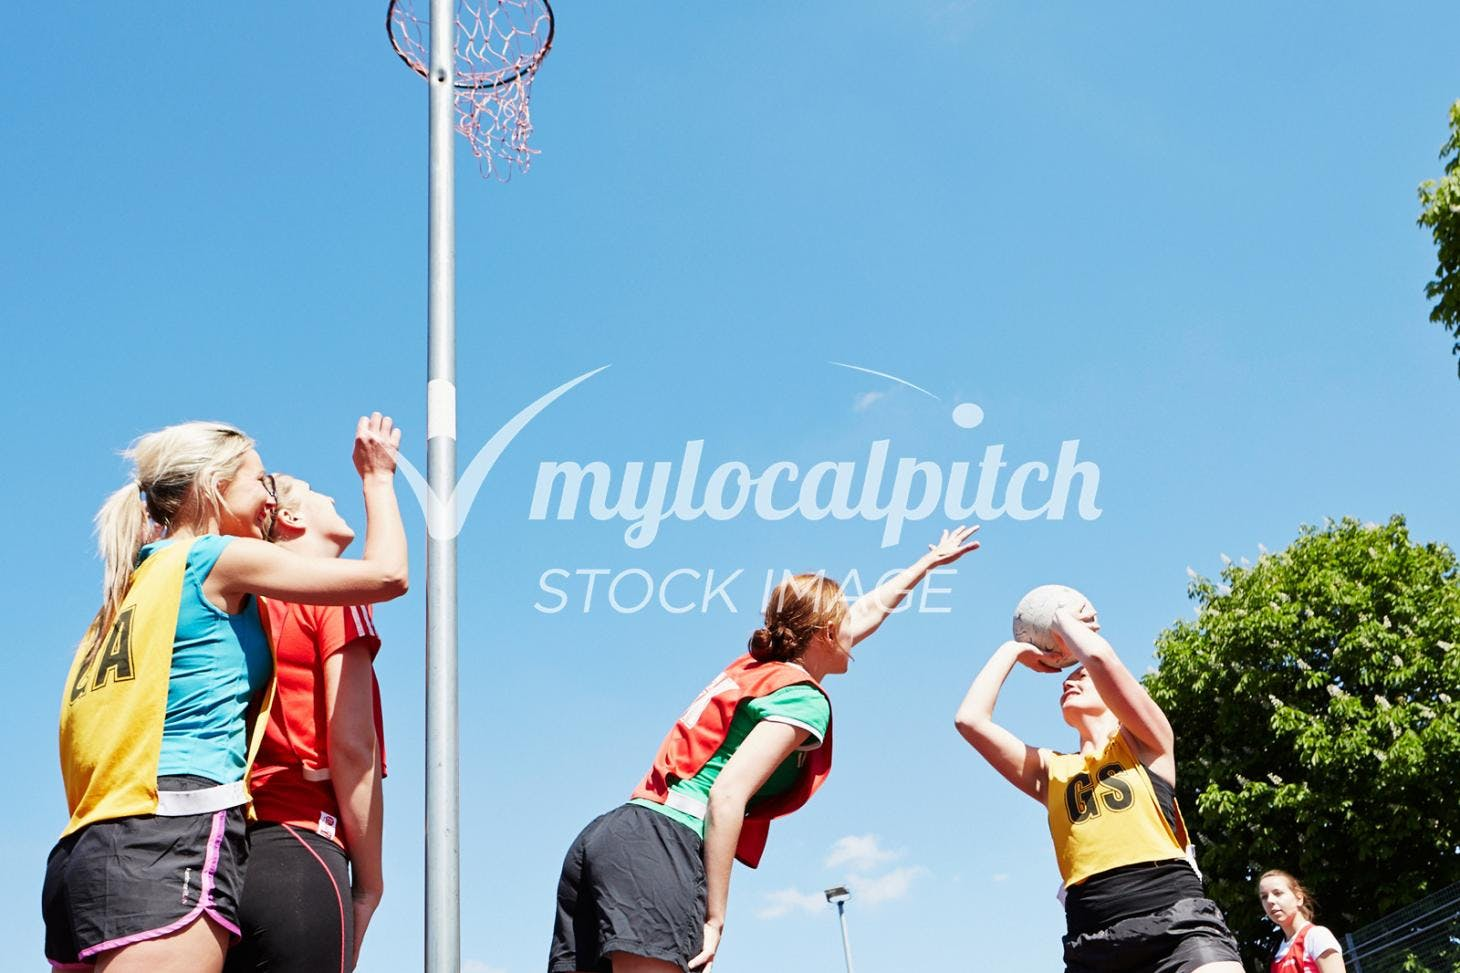 Reynolds Sports Centre Outdoor | Concrete netball court